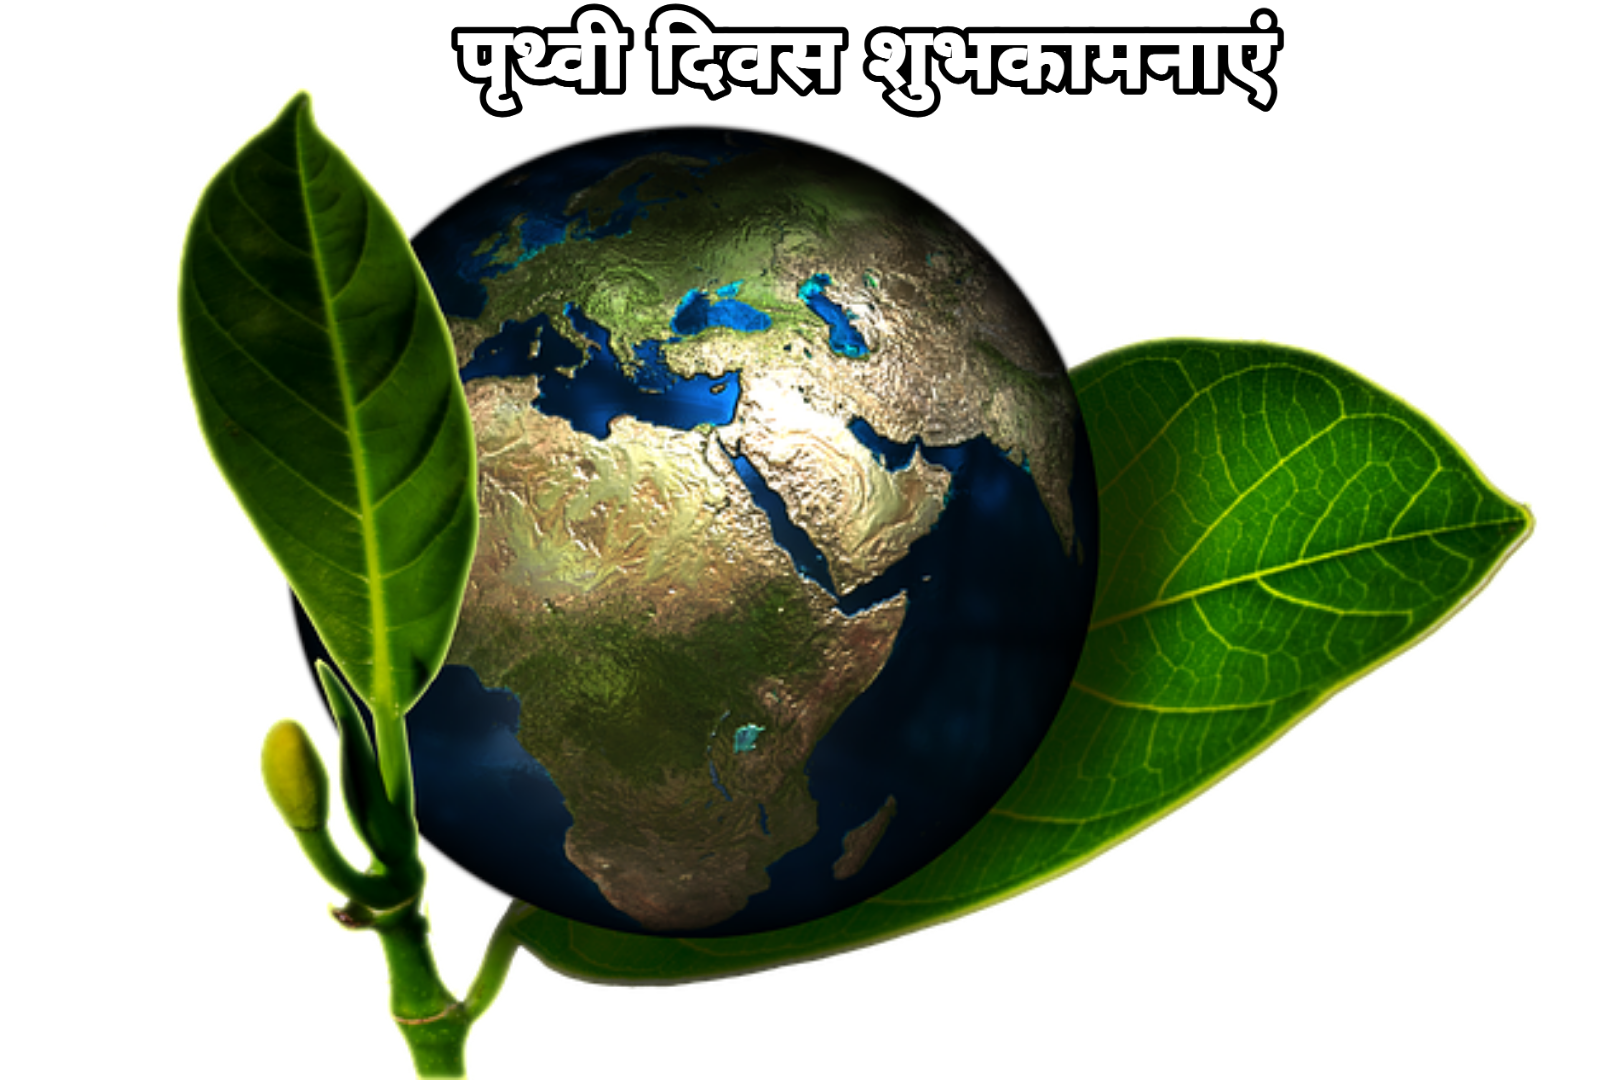 Earth day wishes shayari quotes messages